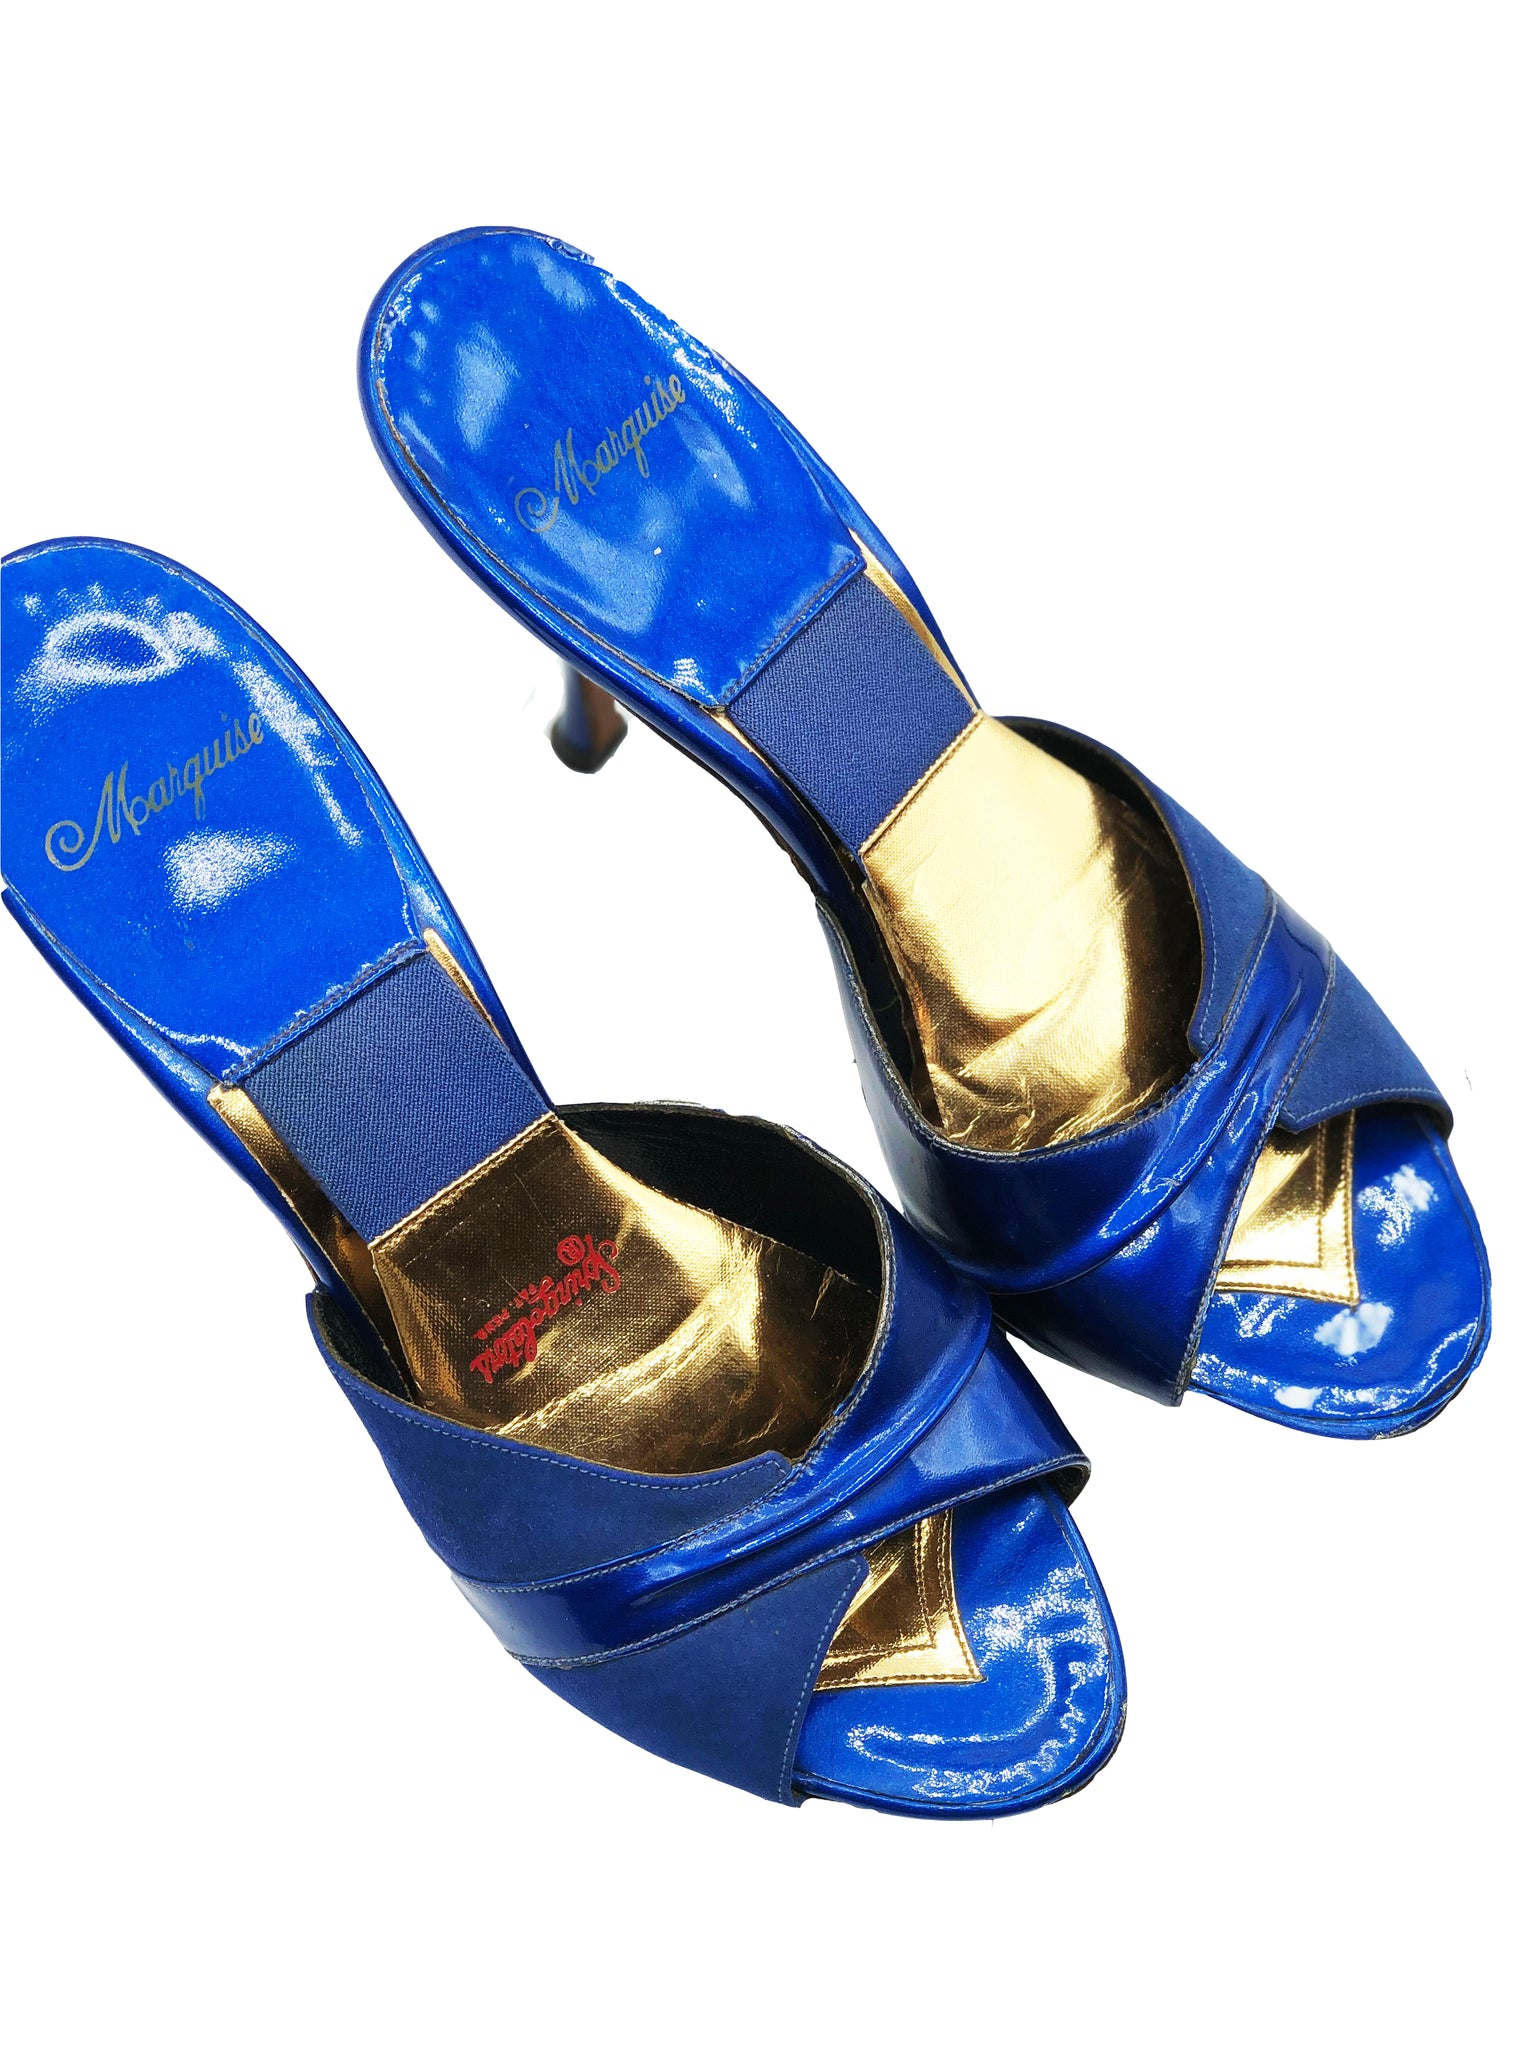 50s Electric Blue Patent Springalator Shoes